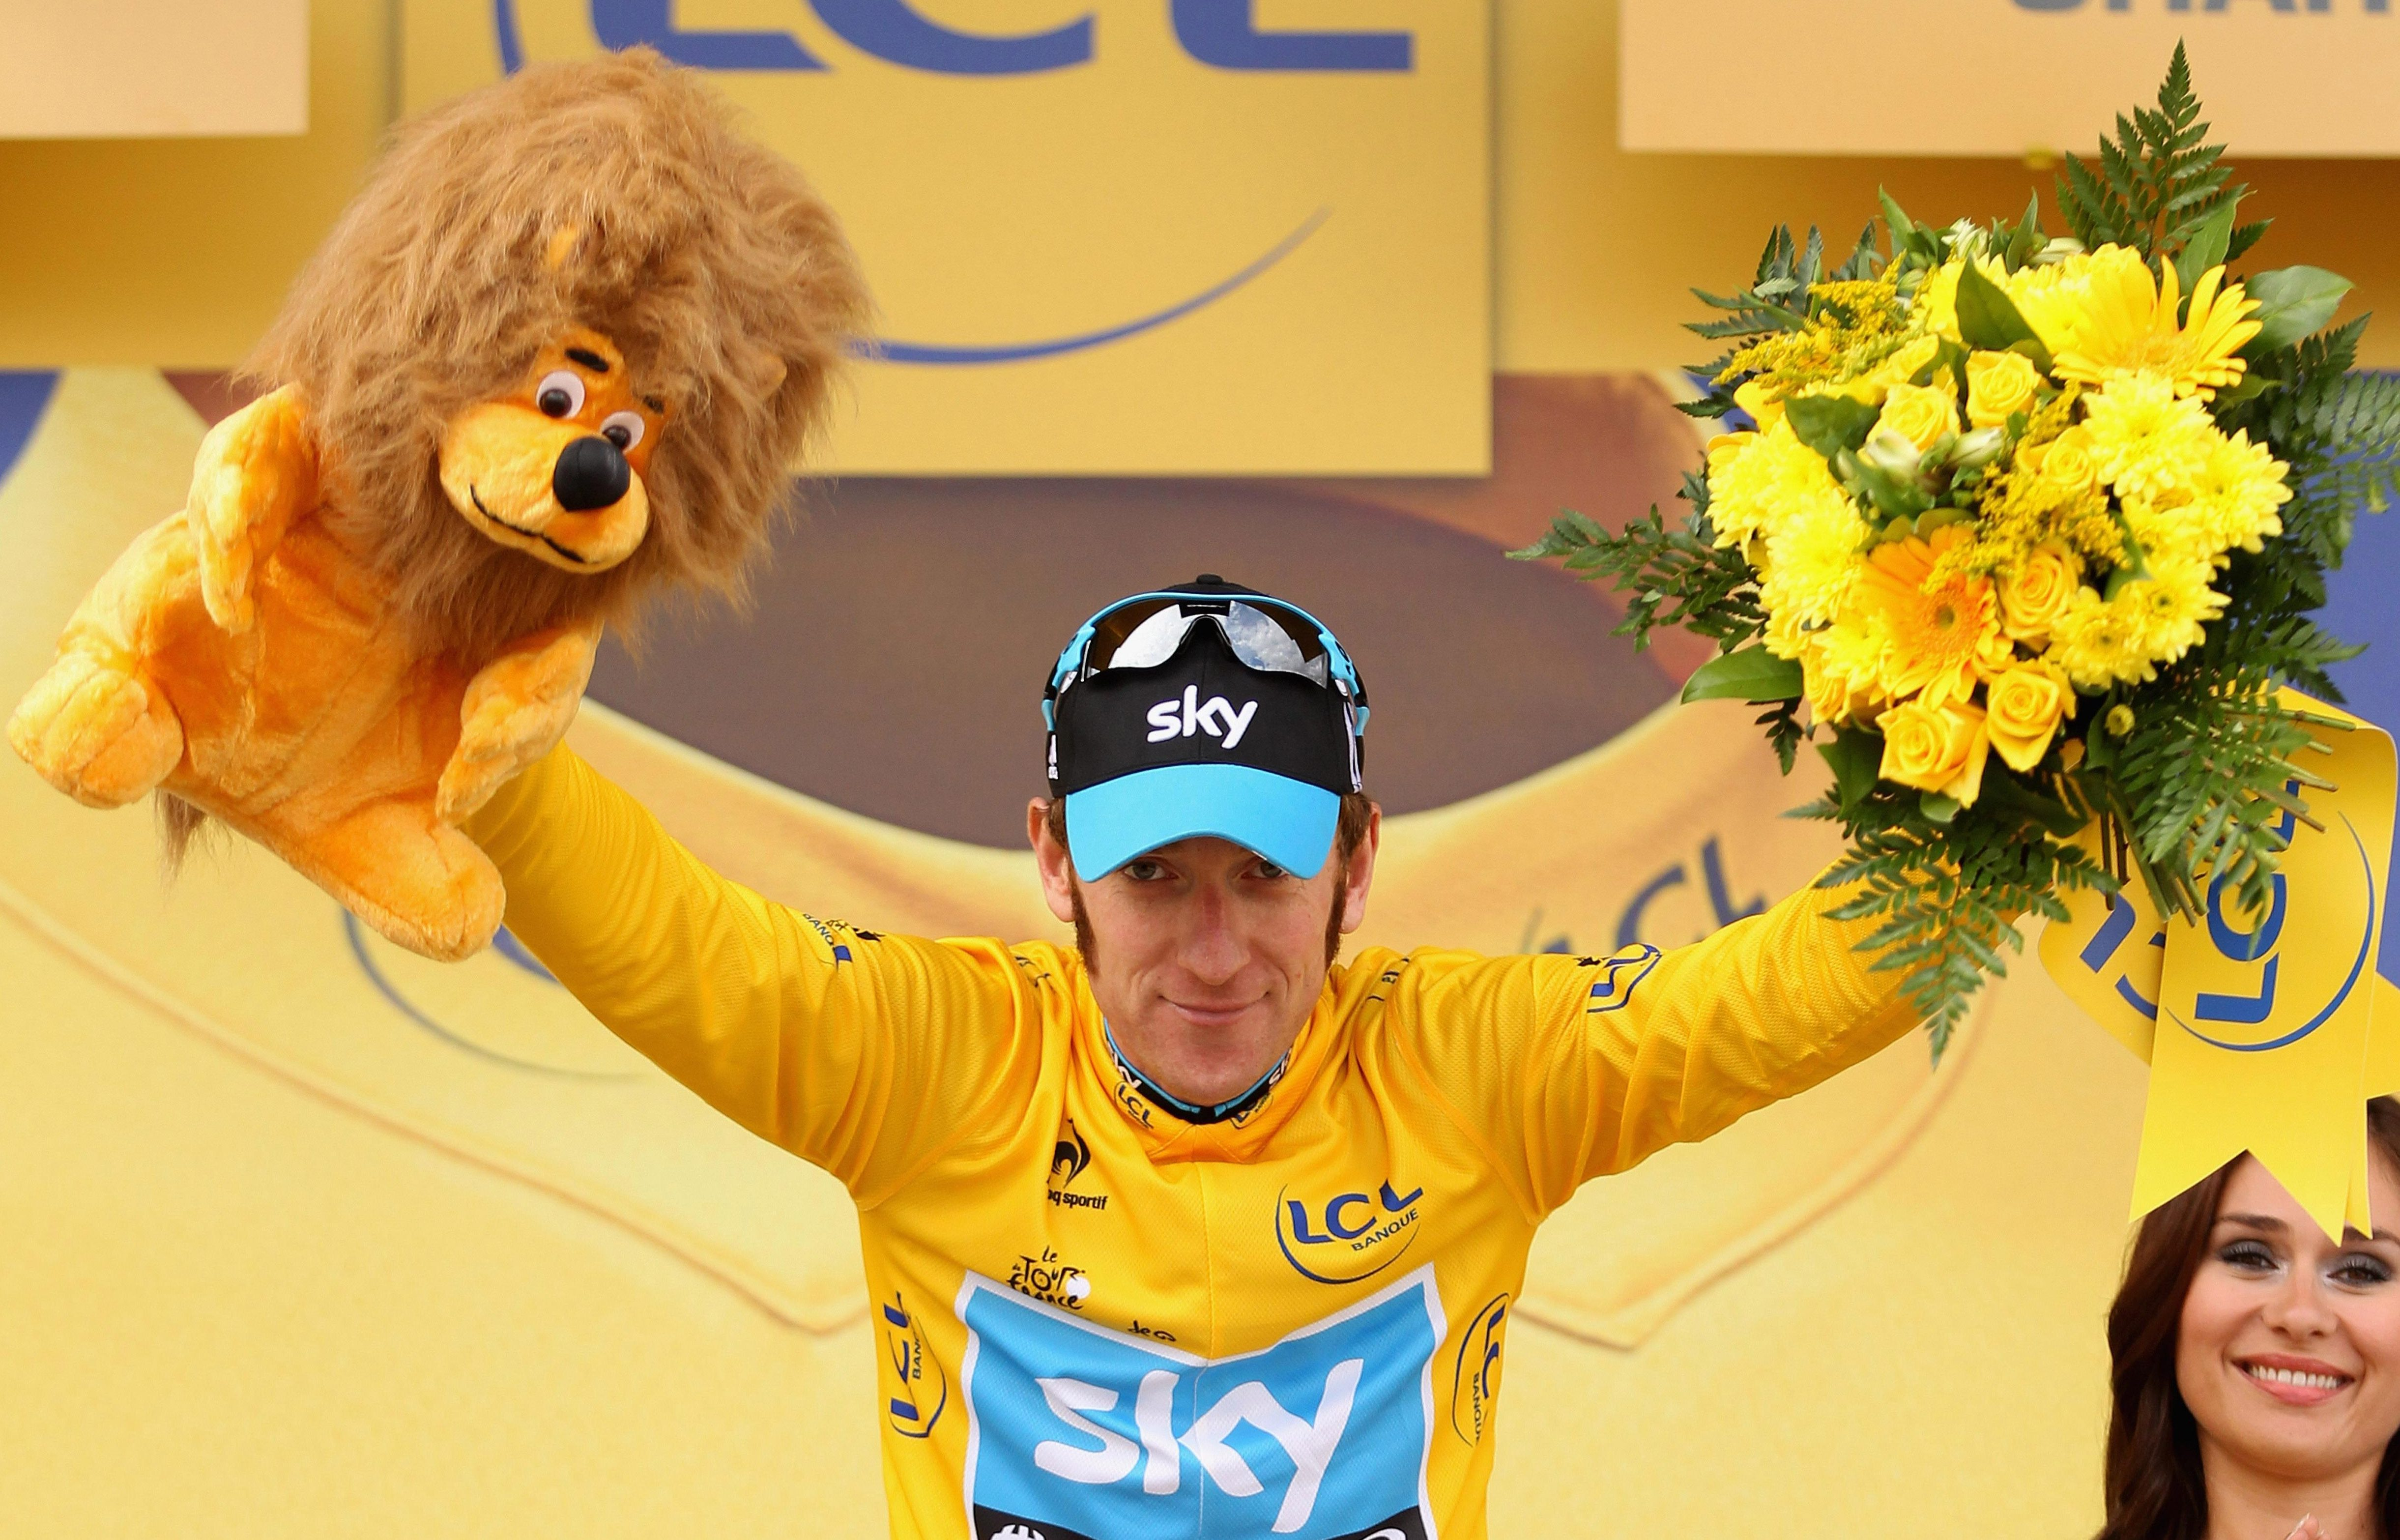 Wiggins won the Tour de France with Team Sky in 2012 but has since fallen out with Sir Dave Brailsford